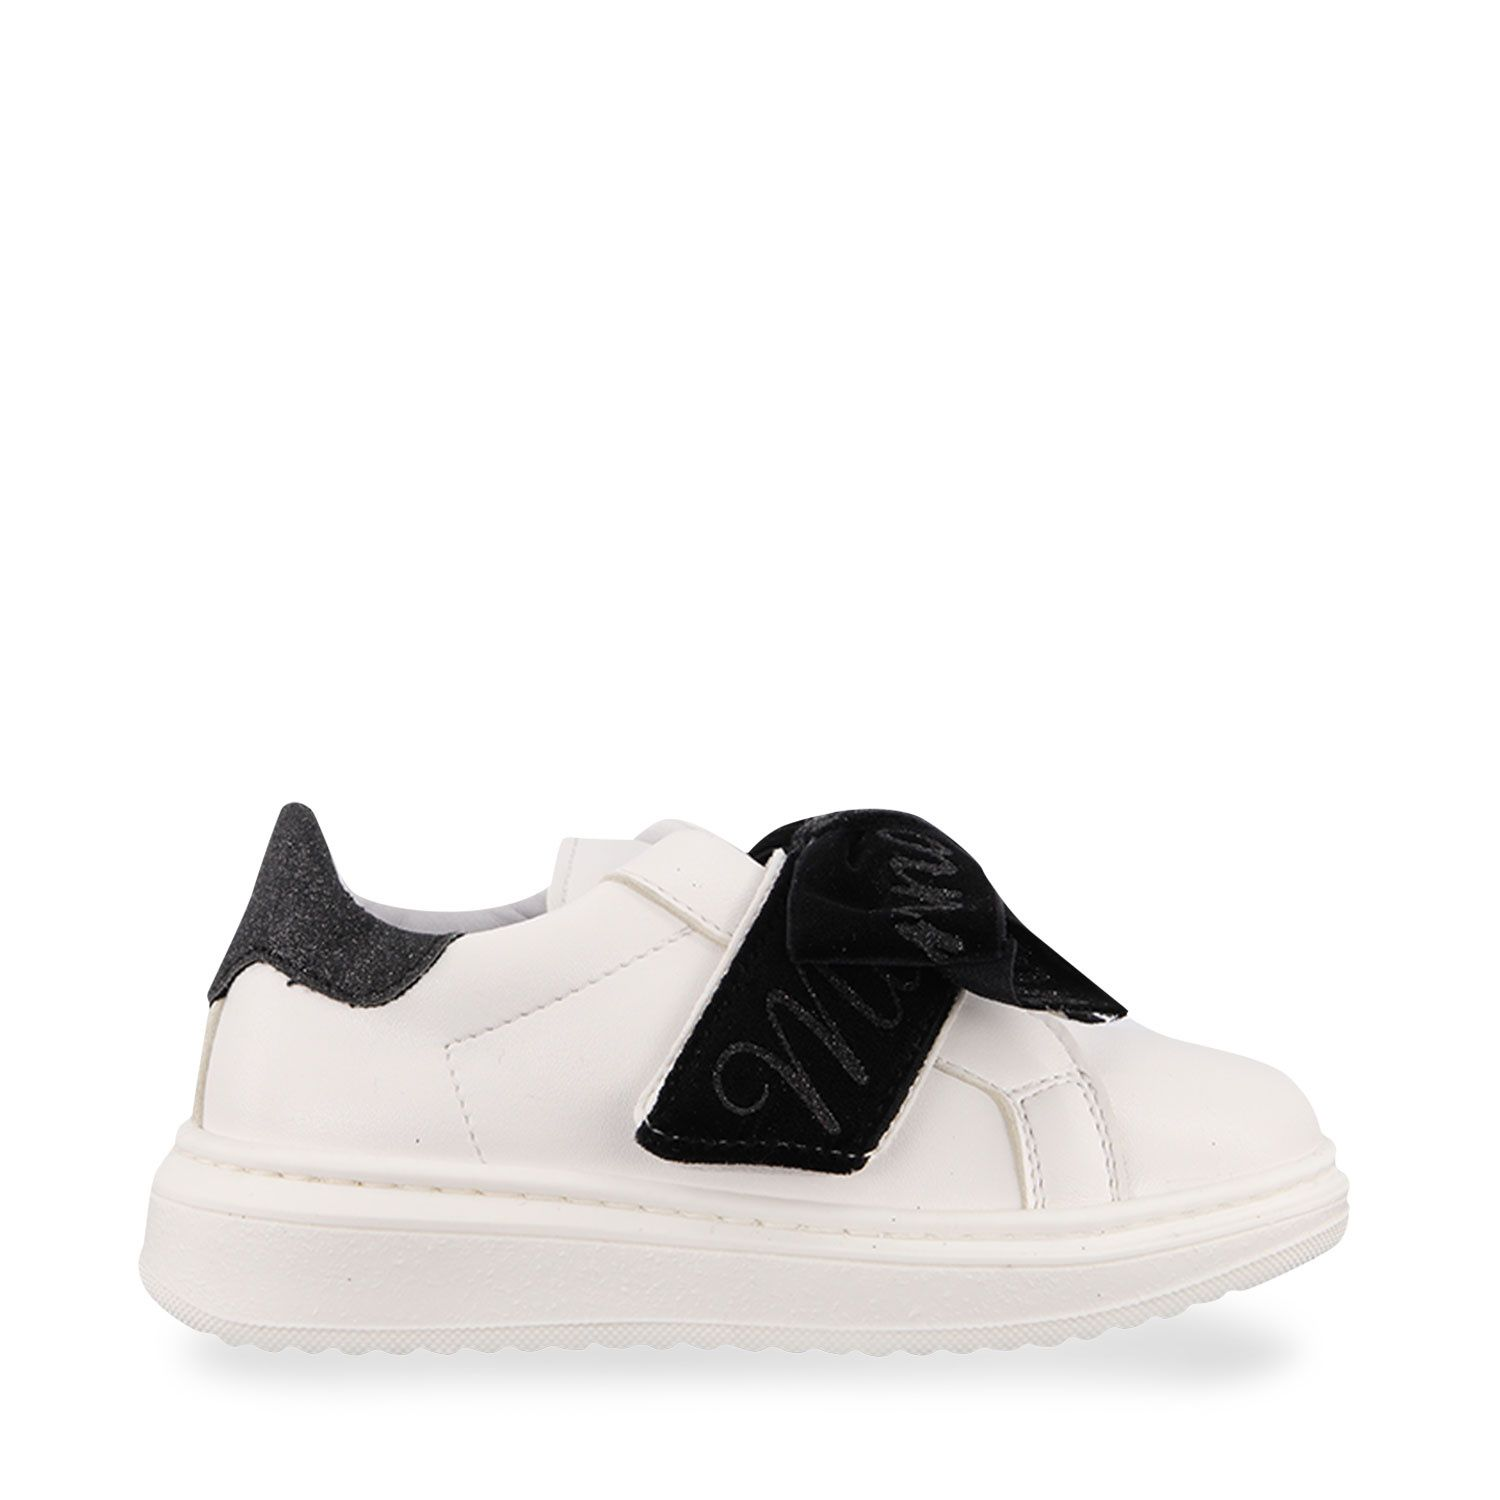 Picture of MonnaLisa 8C6023 kids sneakers white